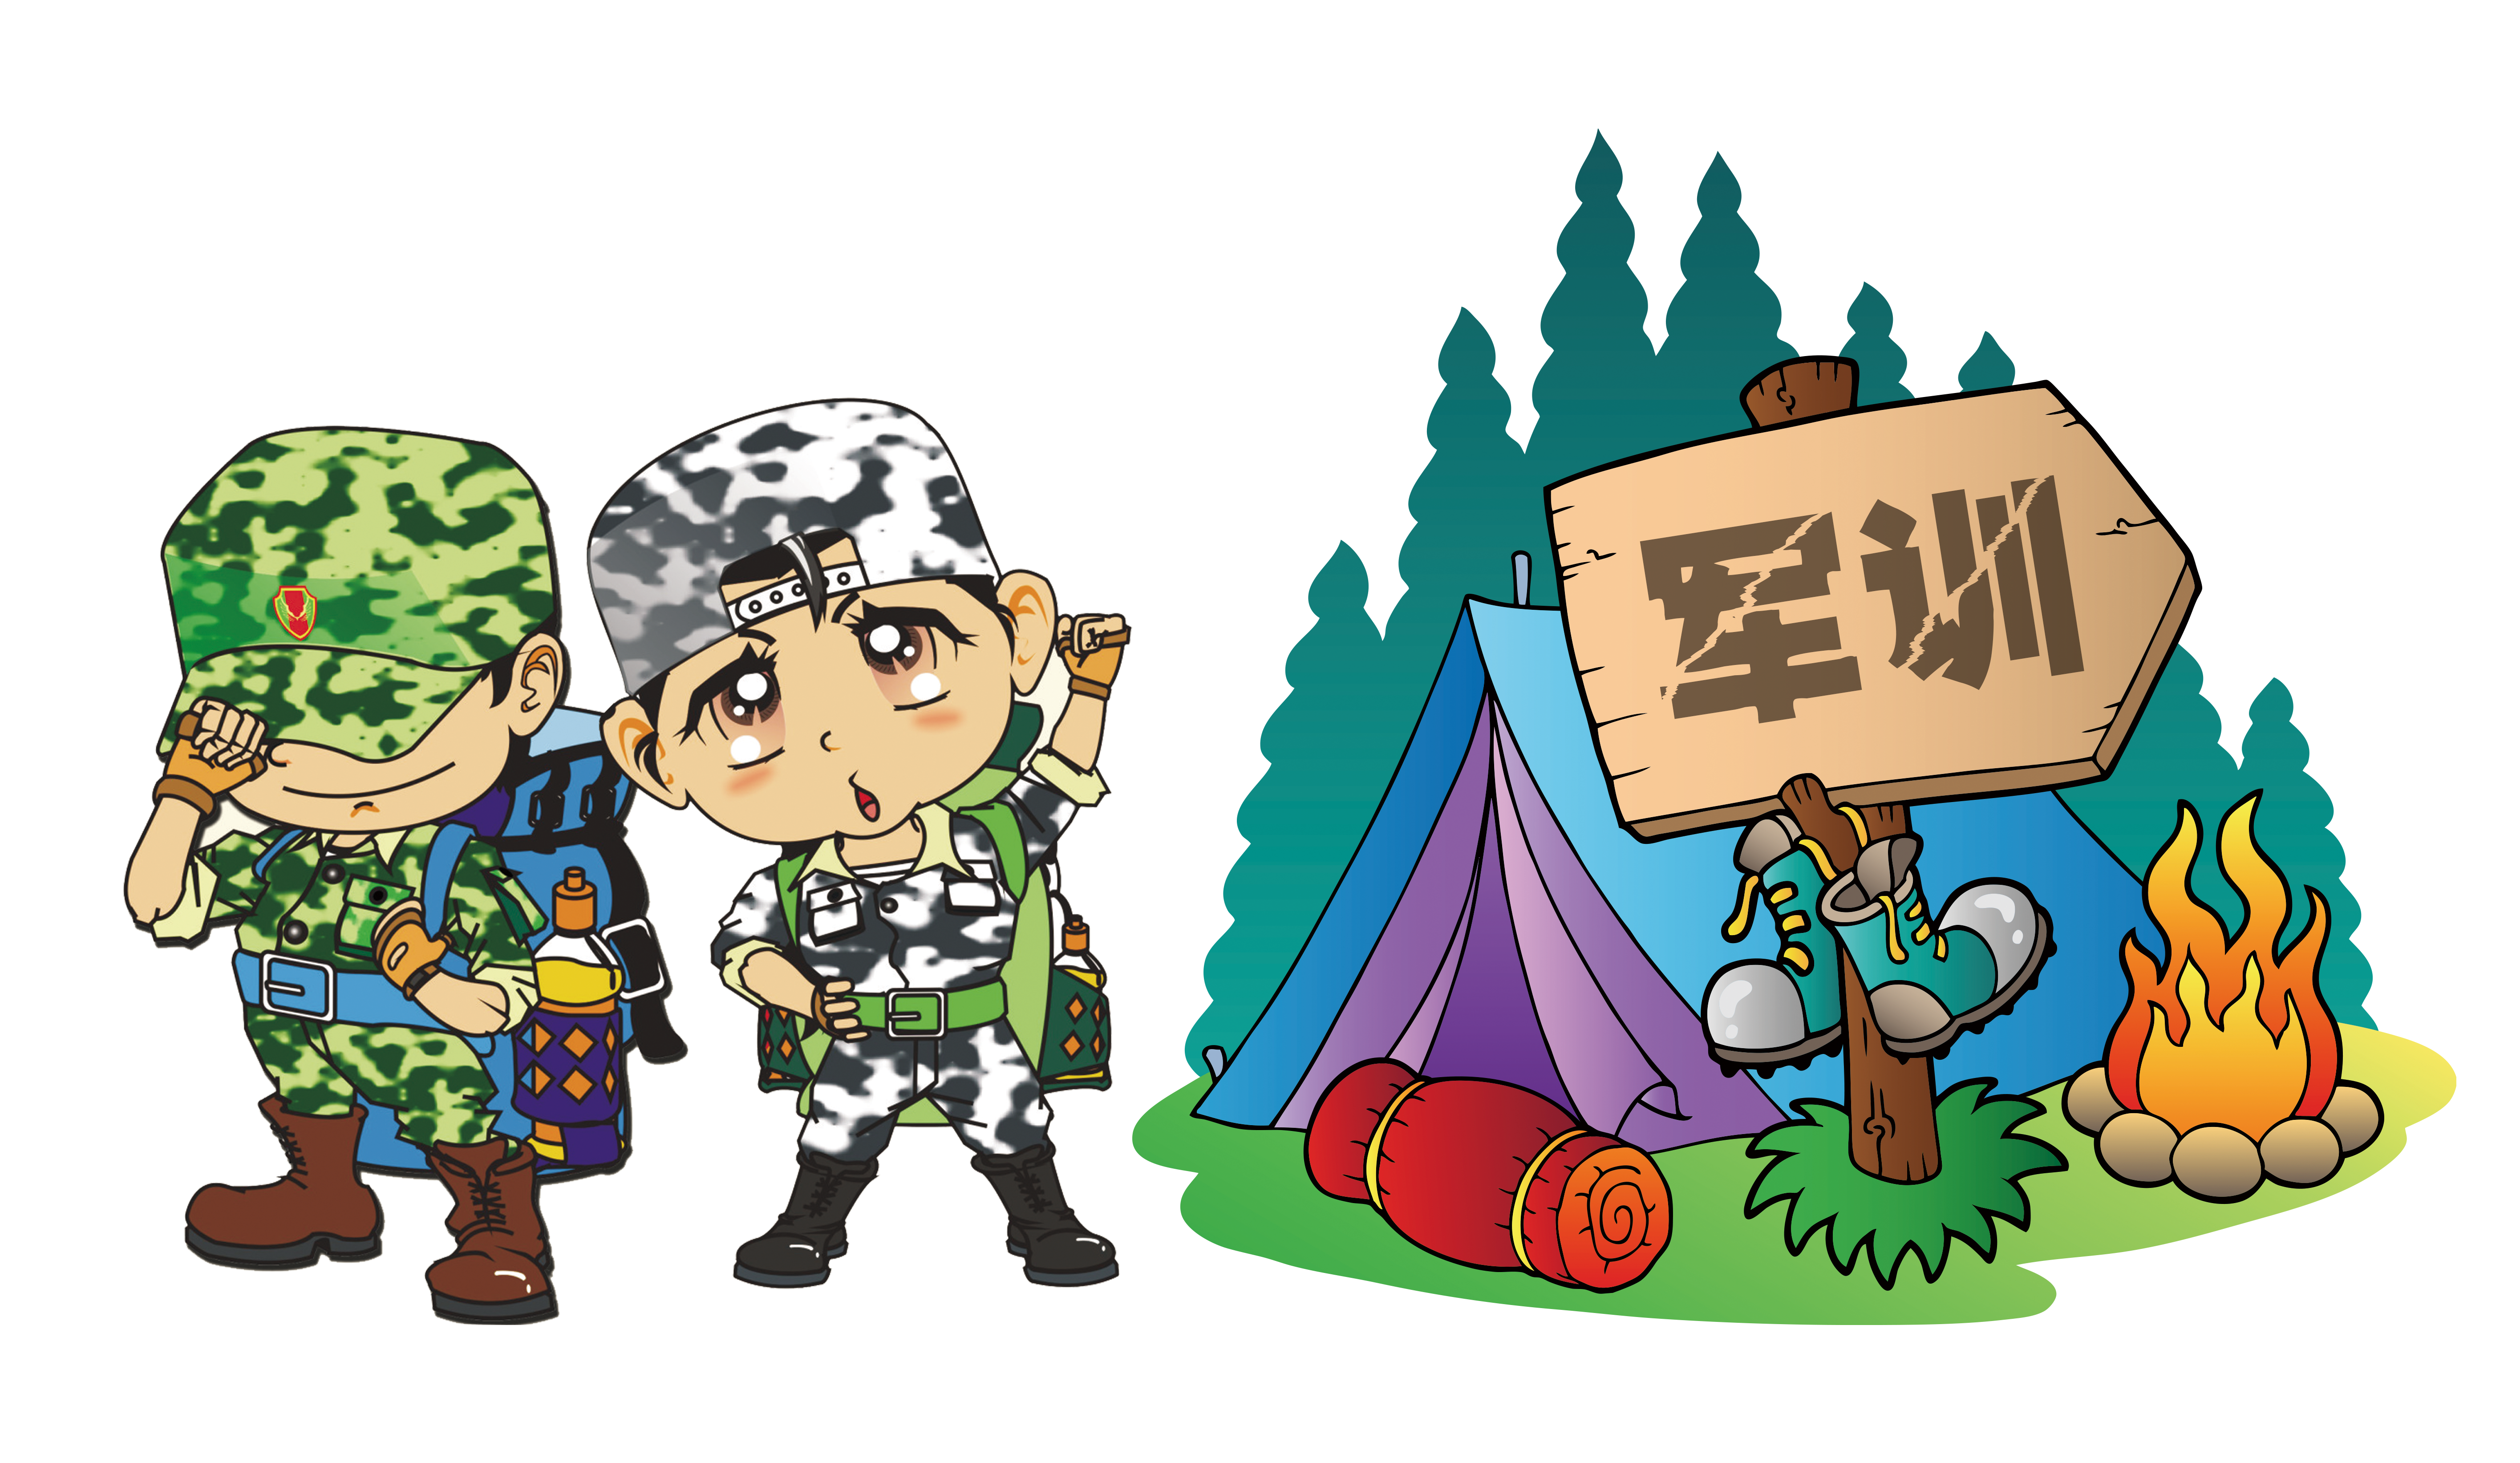 Military clipart military training. Cartoon character summer camp